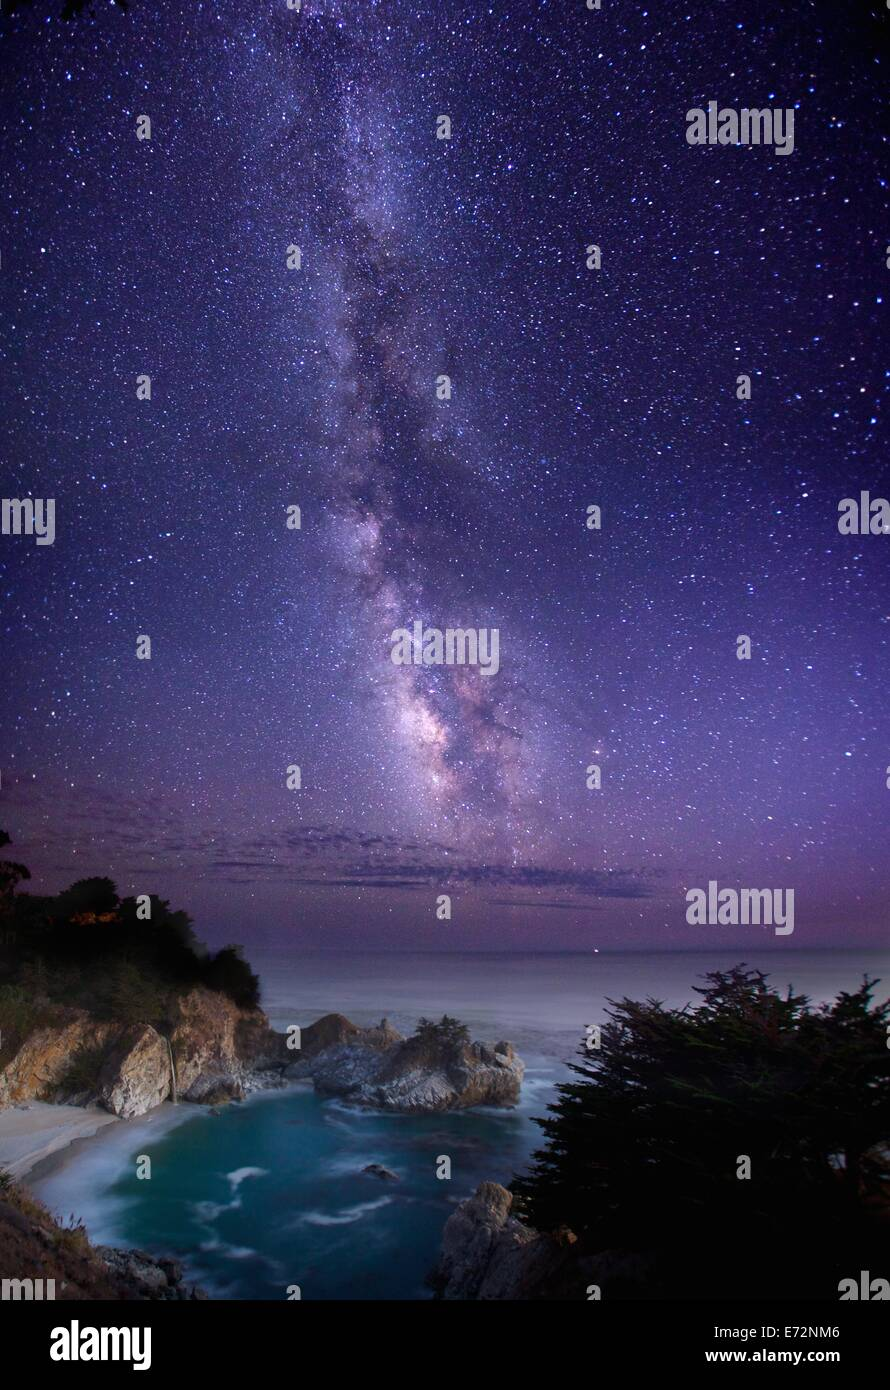 Beautiful McWay Cove in Julia Pfeiffer Burns State Park in Big Sur, California with the Milky Way at night - Stock Image